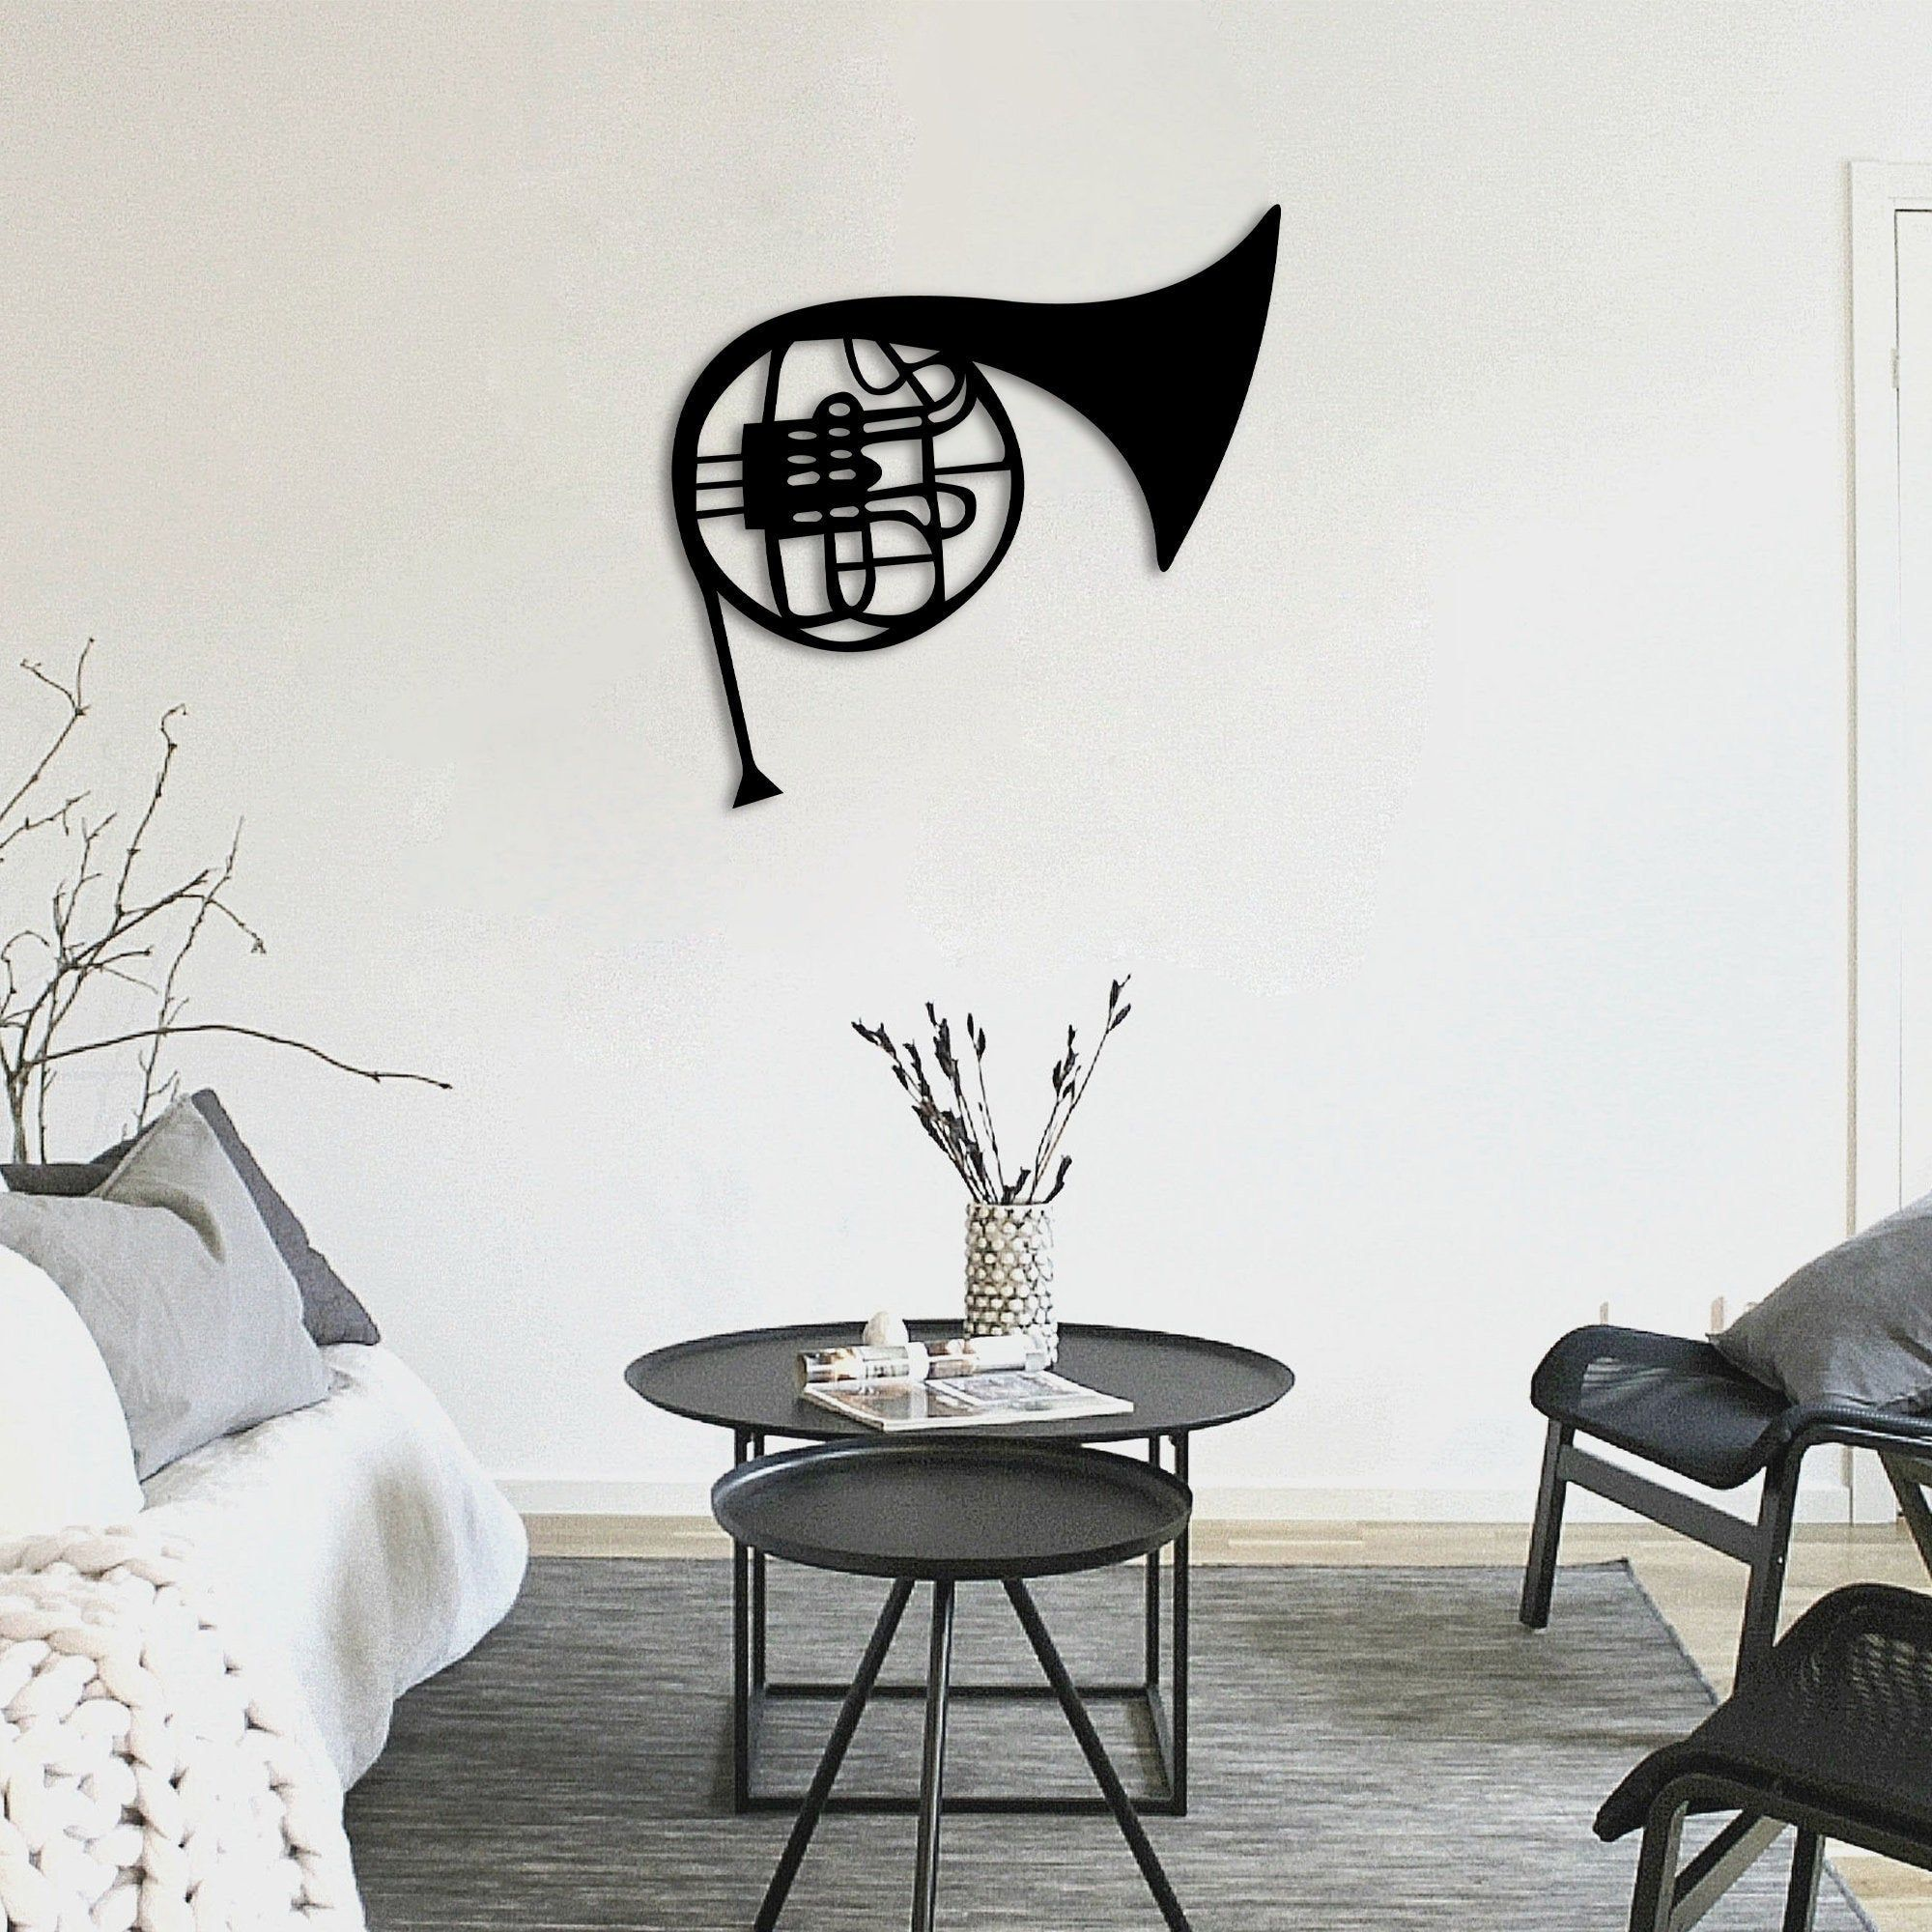 Metal Wall Art French Horn Interior Decoration Home Decor Wall Hanging Home Decoration Wall Art Wall Decoration In 2021 Wall Art Decor Metal Wall Art Home Decor